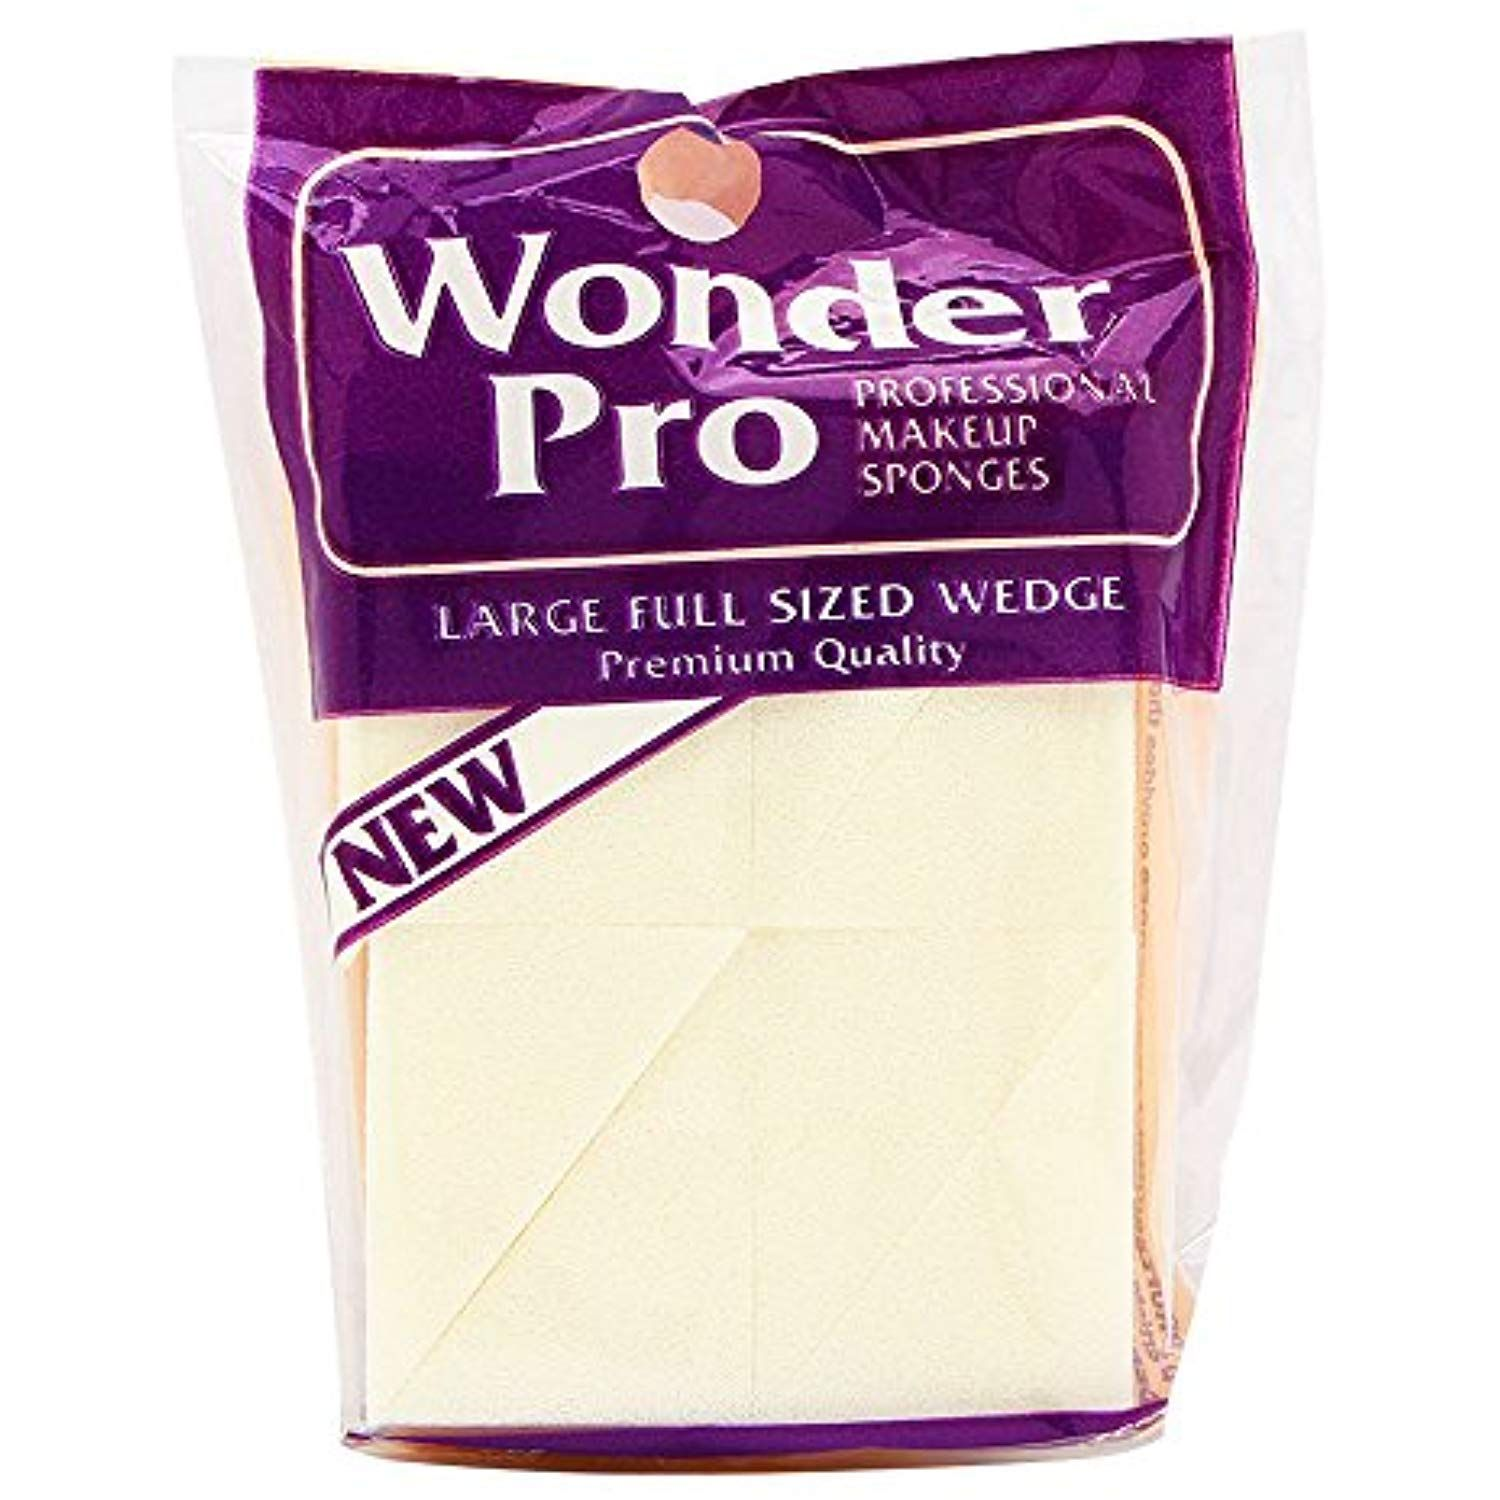 Wonder Pro Professional Makeup Sponges Large Full Sized Wedge 04100 8 Count You Can Find Out More Details At The Li Makeup Sponge Professional Makeup Makeup